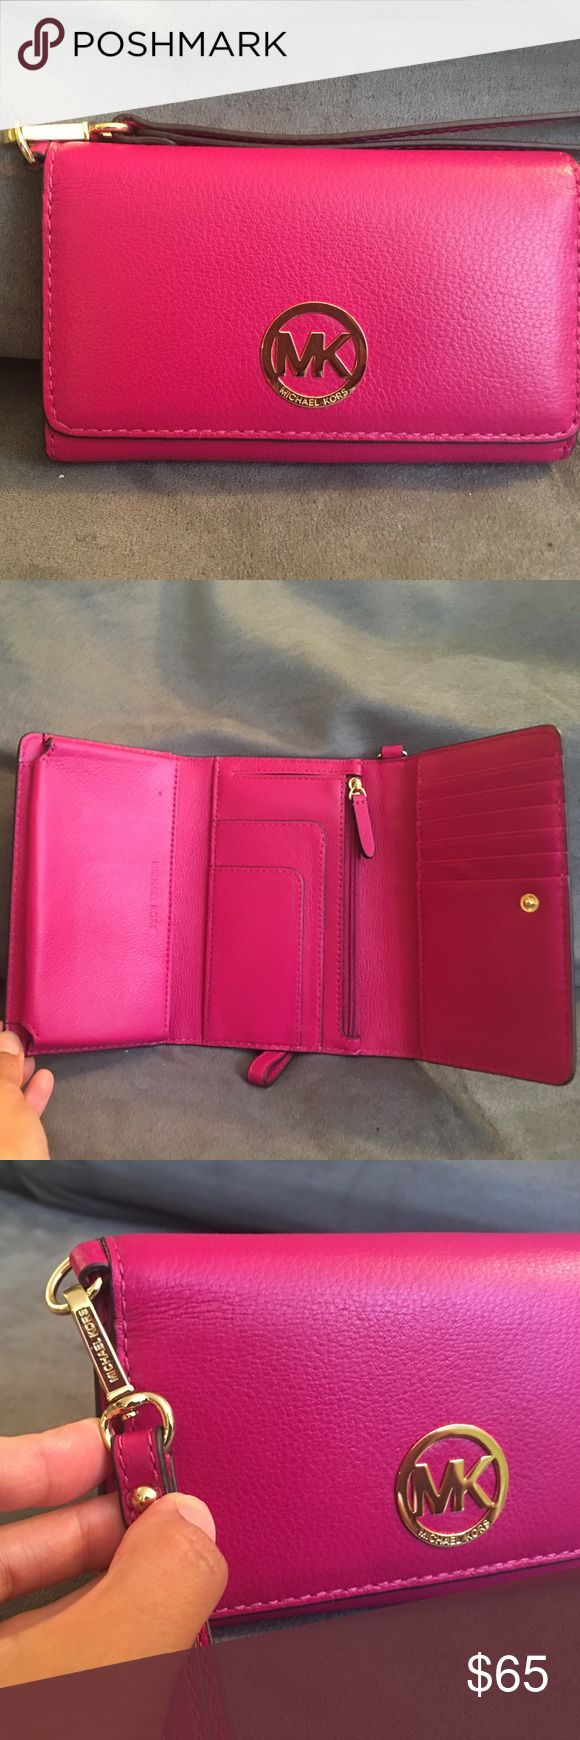 NWOT! Michael Kors pink phone/wallet wristlet! NWOT!! When open, has a slot for your phone, zipper for coins, six credit card slots, pocket behind zipper for cash, and two slots in front of zipper. Michael Kors Bags Wallets